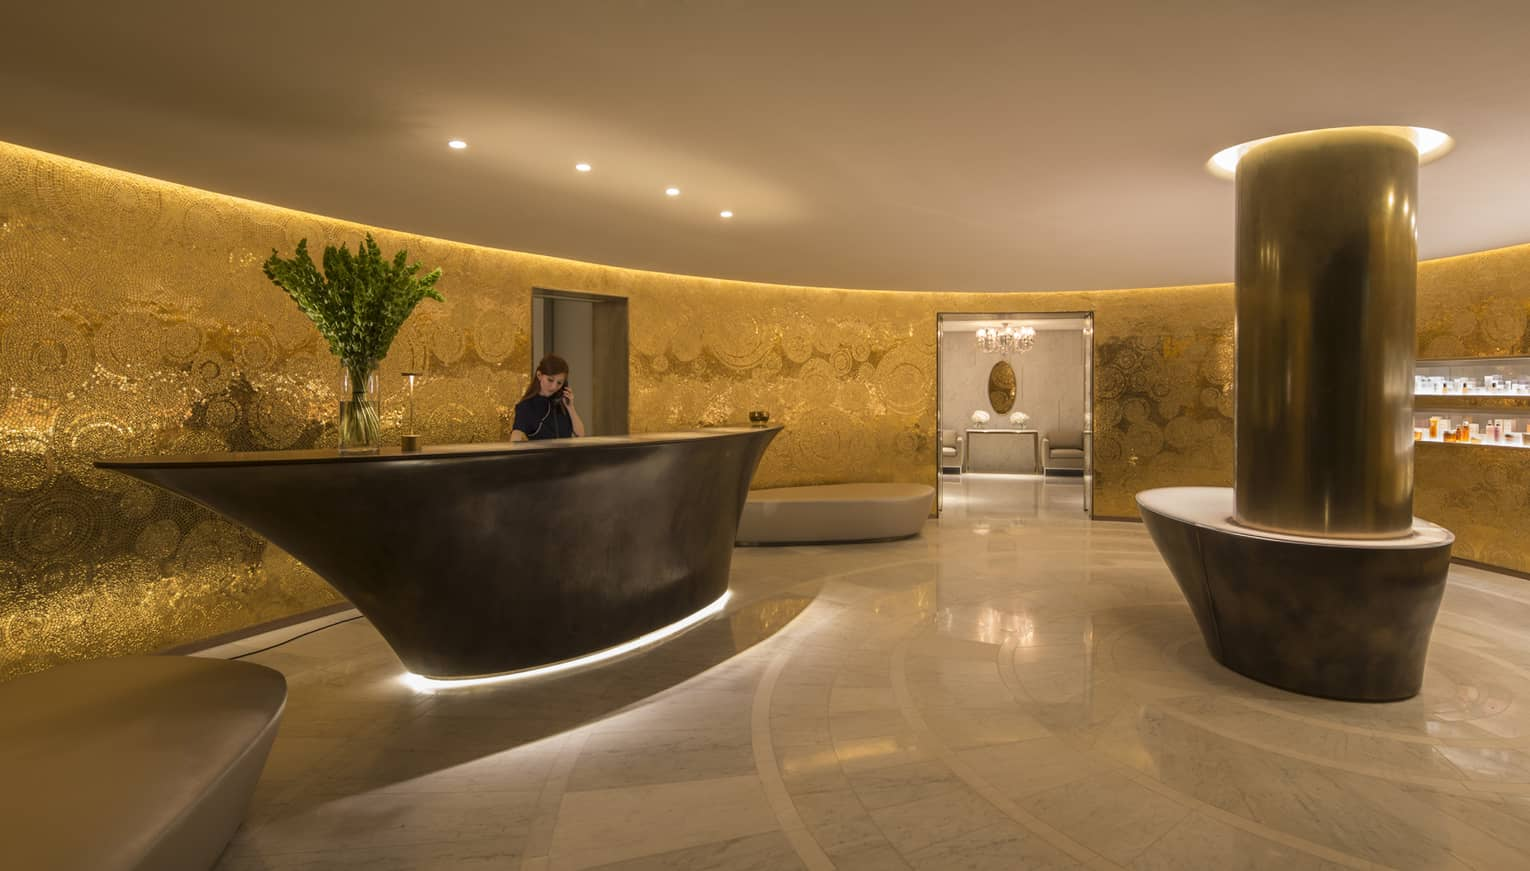 Lobby at the Spa with gold walls and modern details